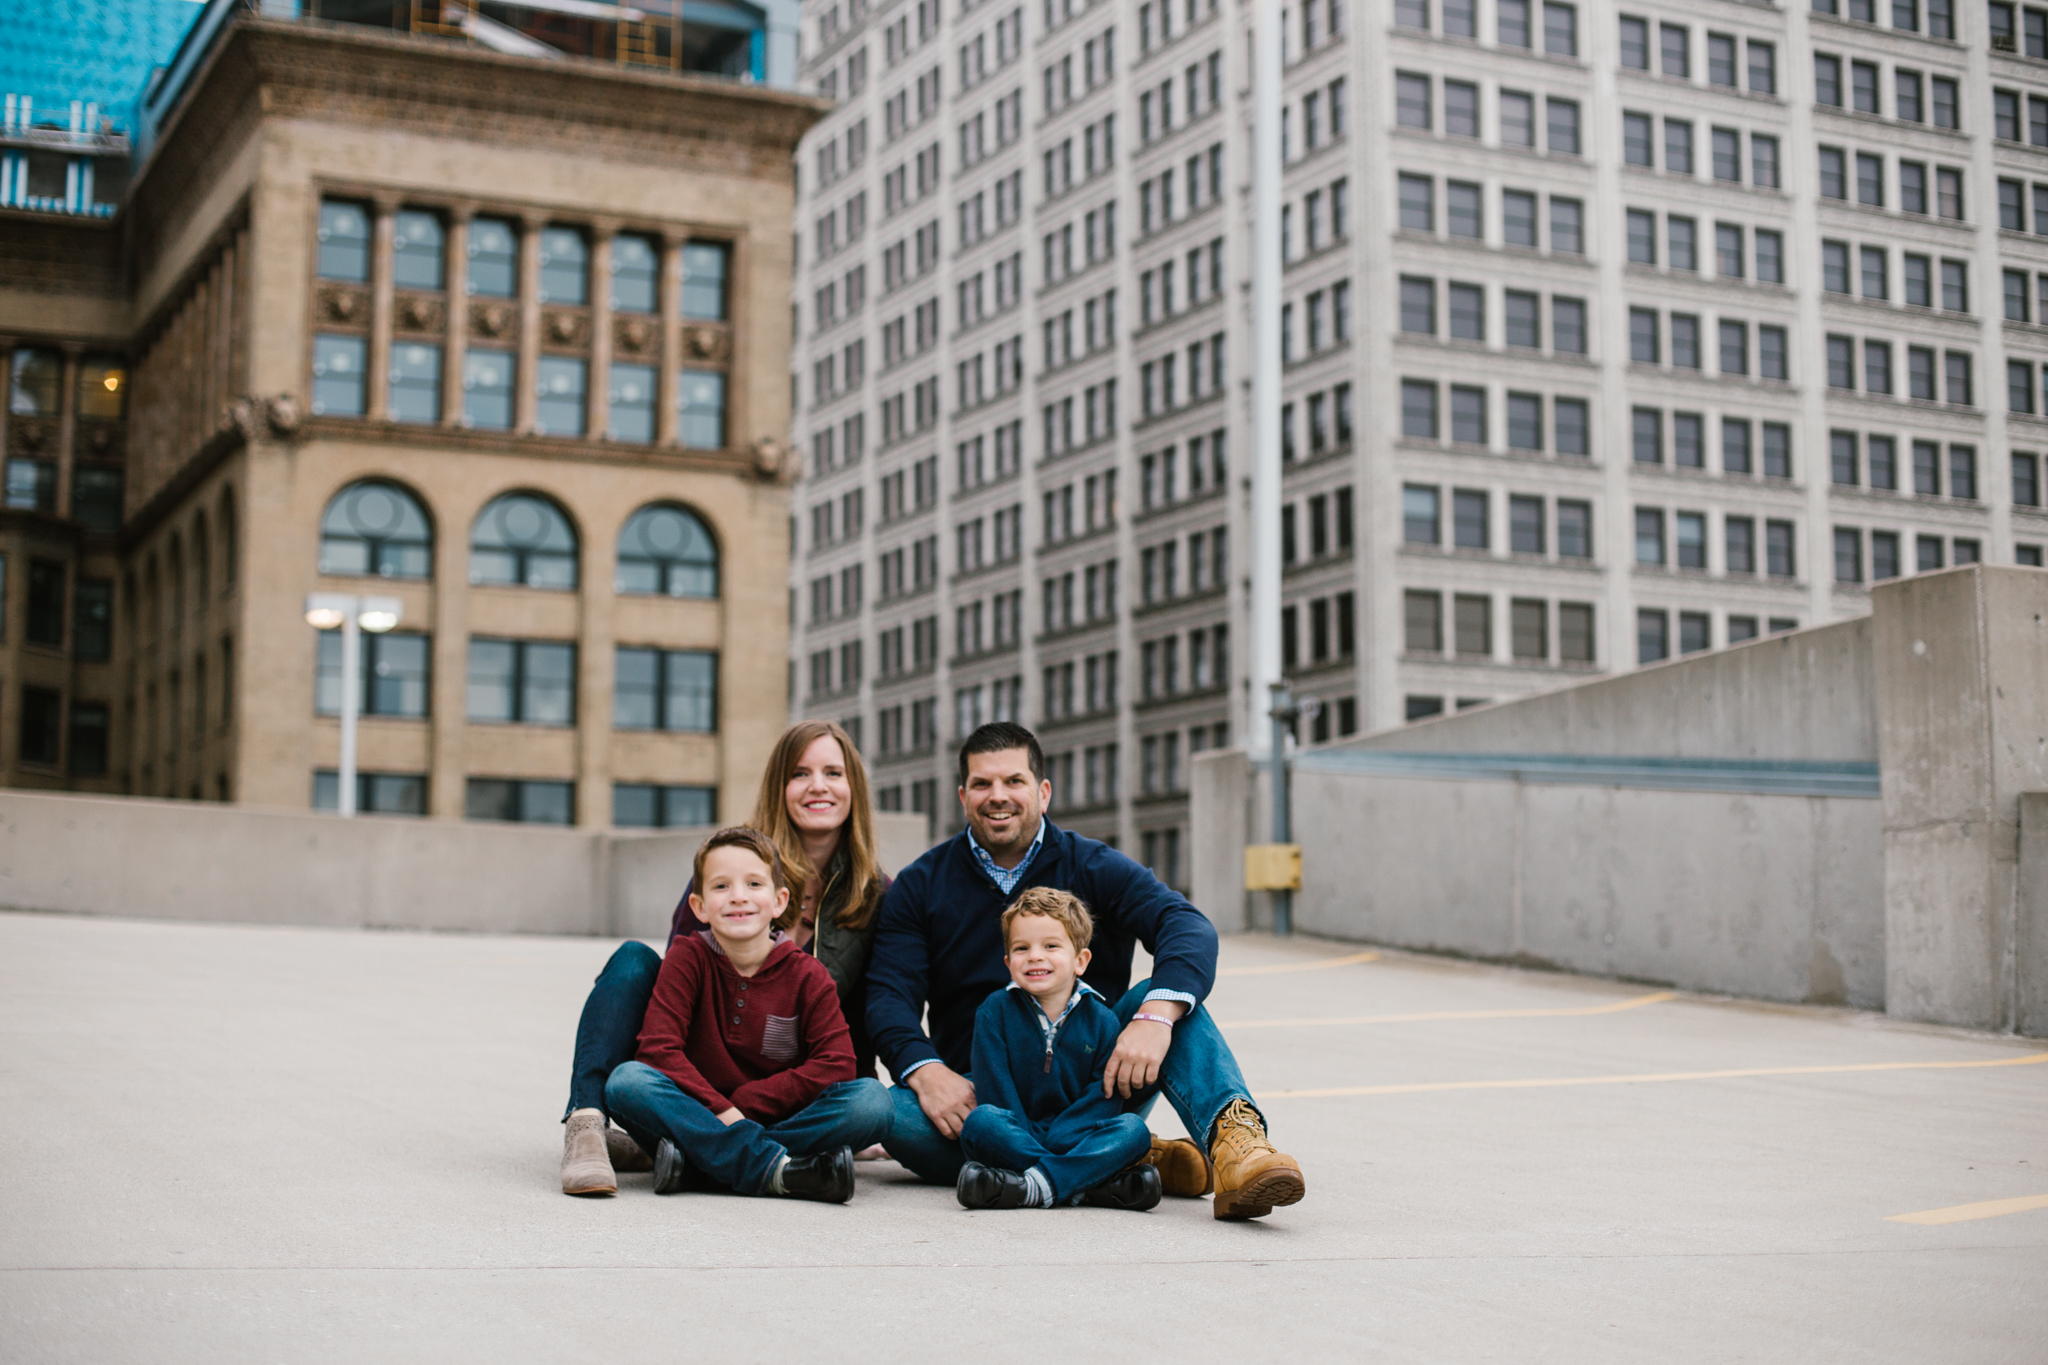 Abby has been doing our family portraits for several years now. She comes up with great locations to shoot and is very creative behind the lens. She is the sweetest with our two boys as well! I'm so thankful for her talent and ability to capture the spirit of our boys as they continue to grow. We'll be booking Abby for years to come!